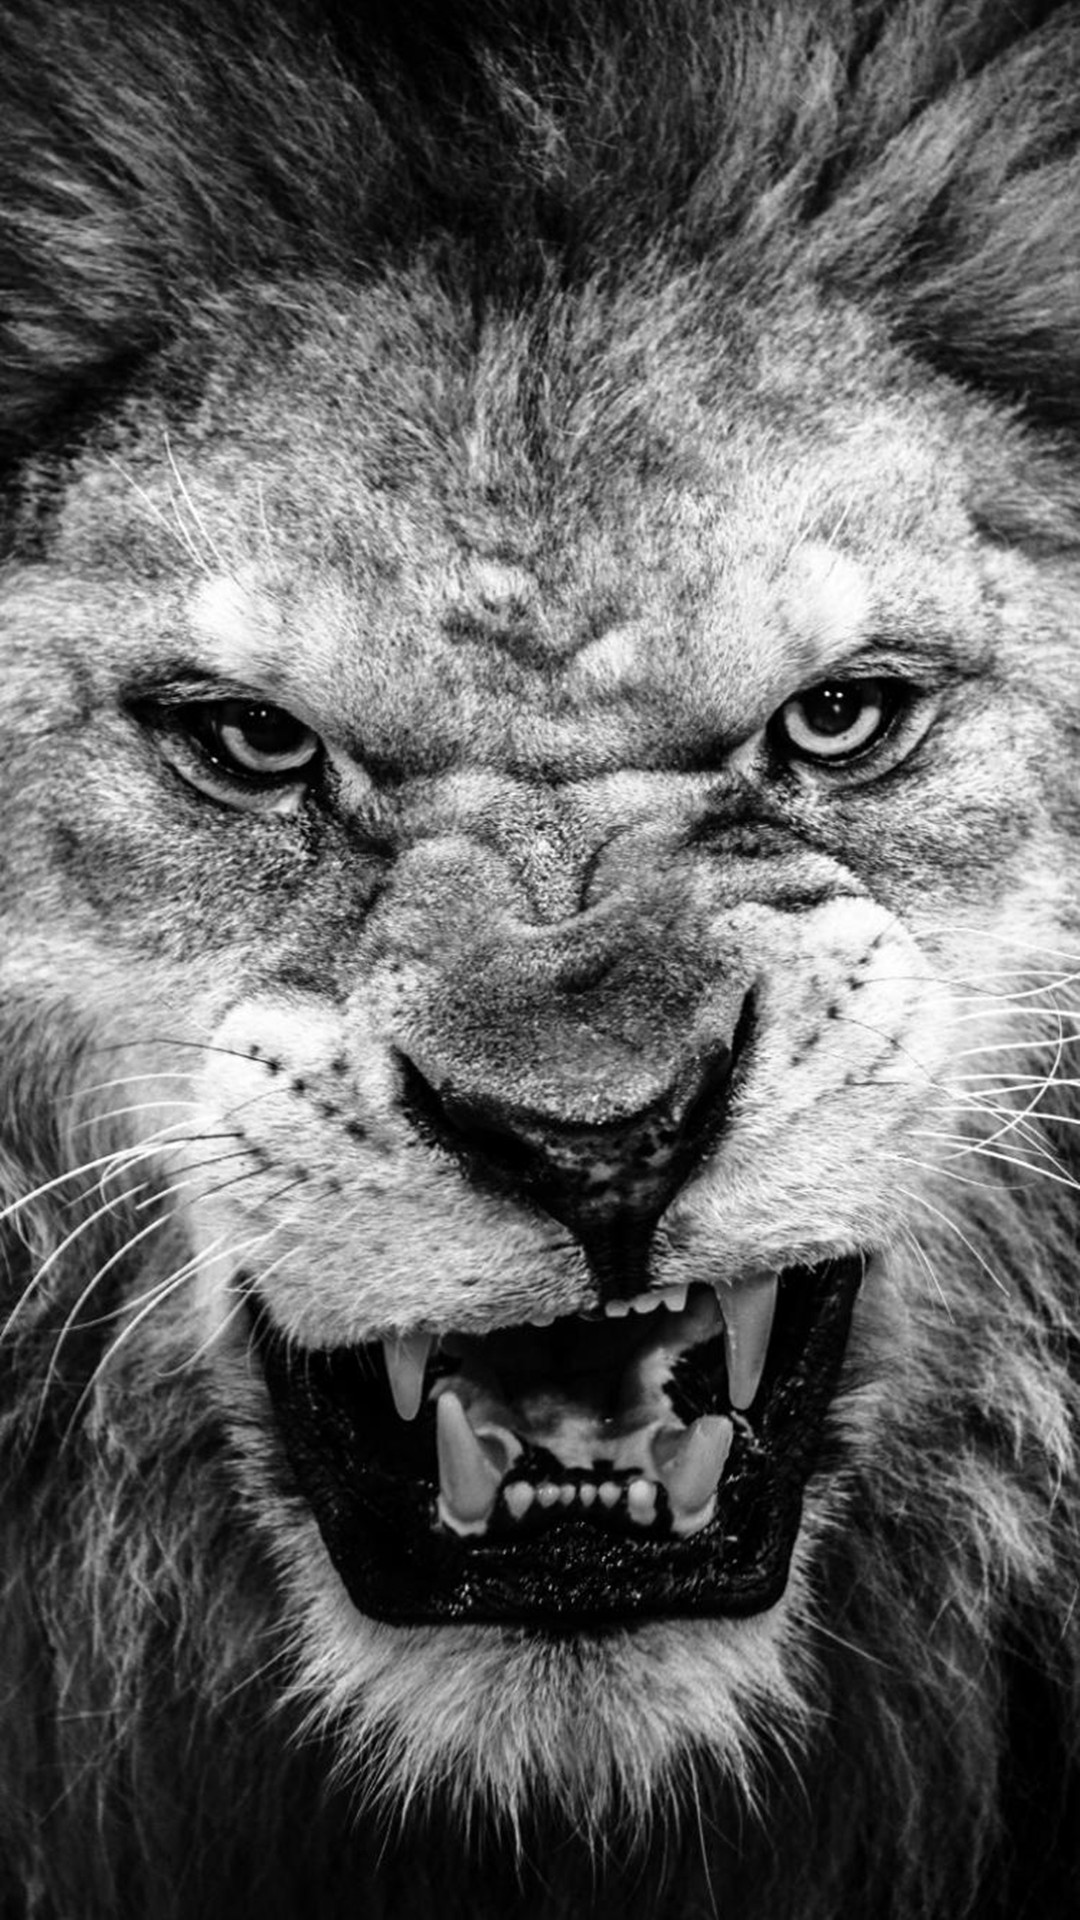 White Lion HD Wallpapers 1600×1200 White Lion Images   Adorable Wallpapers    Best   Pinterest   Lion images, Lions and Wallpaper